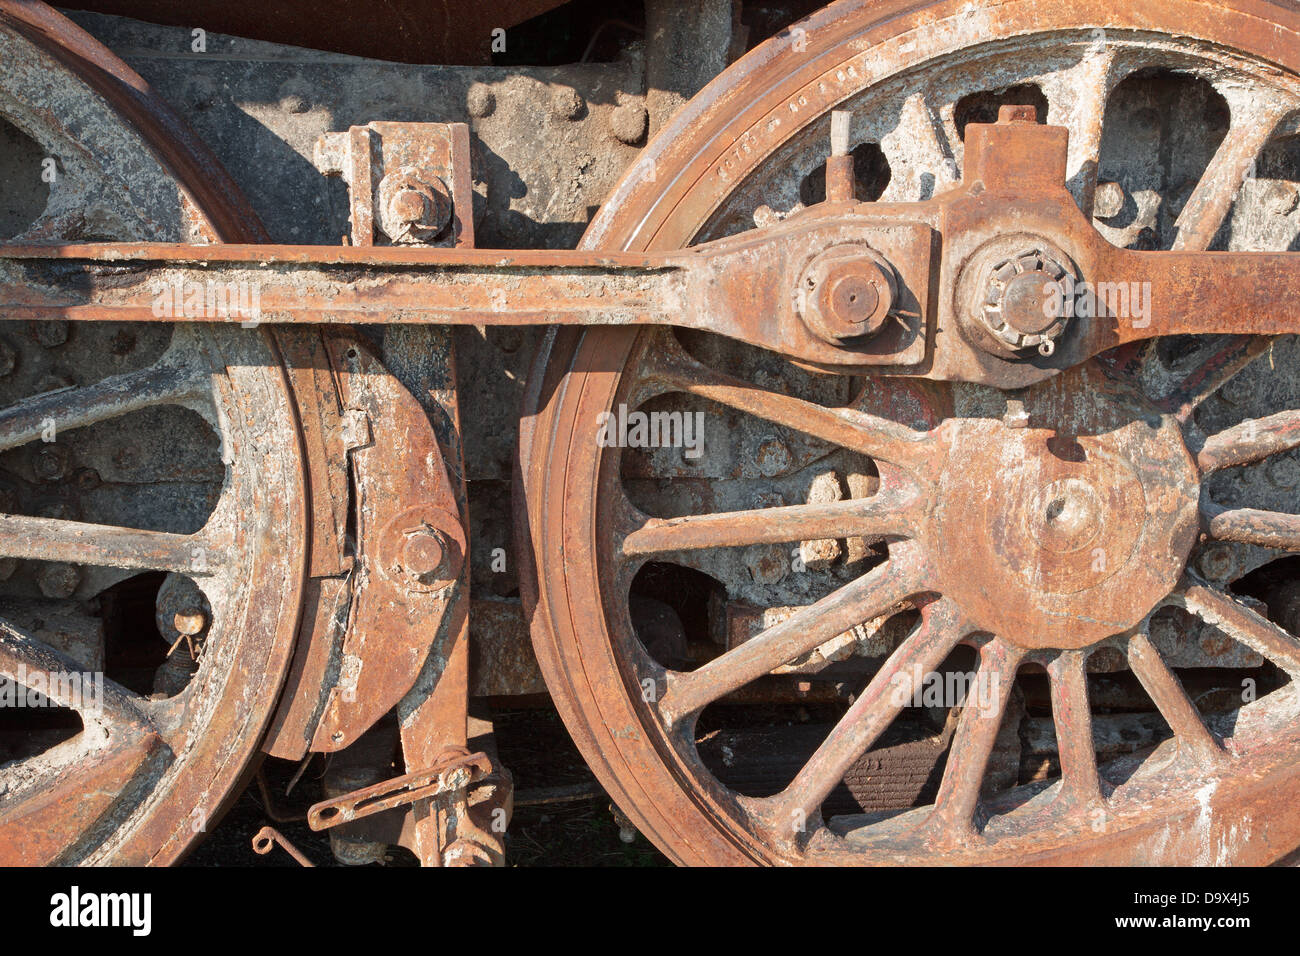 detail of driving rod mechanism in rust on old steam locomotive - Stock Image